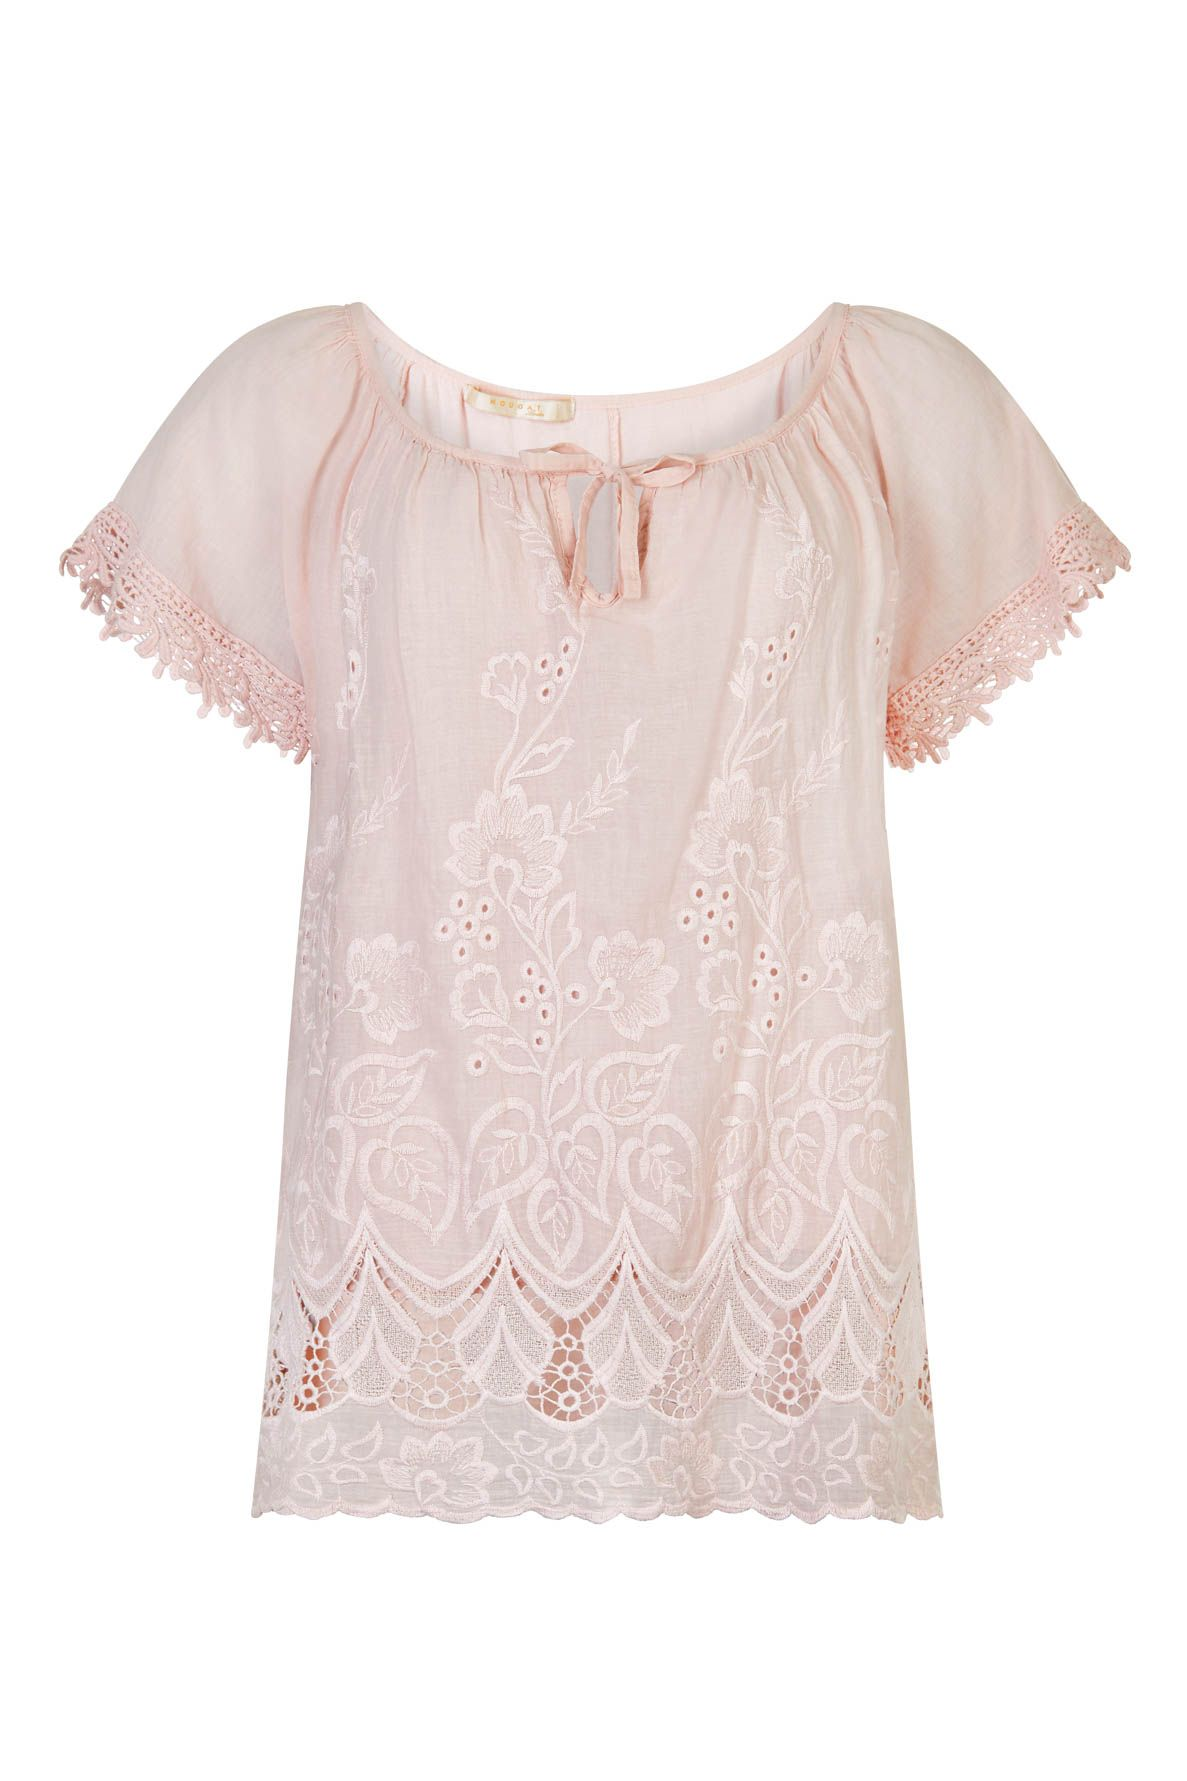 Nougat London Foxglove Embroidered Top, Pink